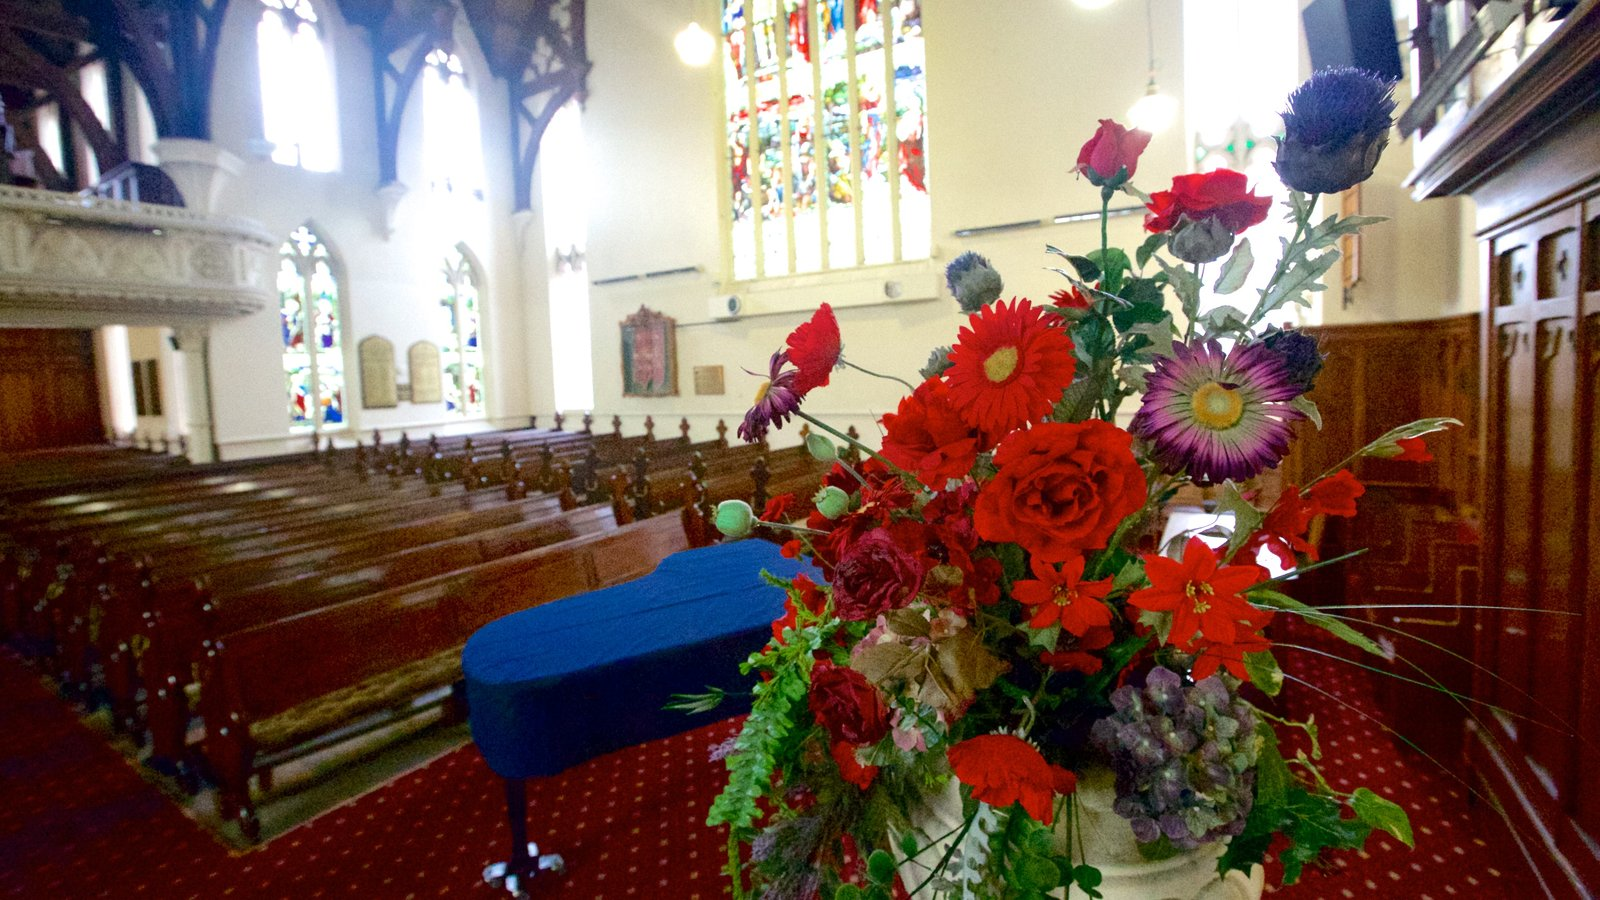 First Church of Otago featuring religious elements, interior views and a church or cathedral